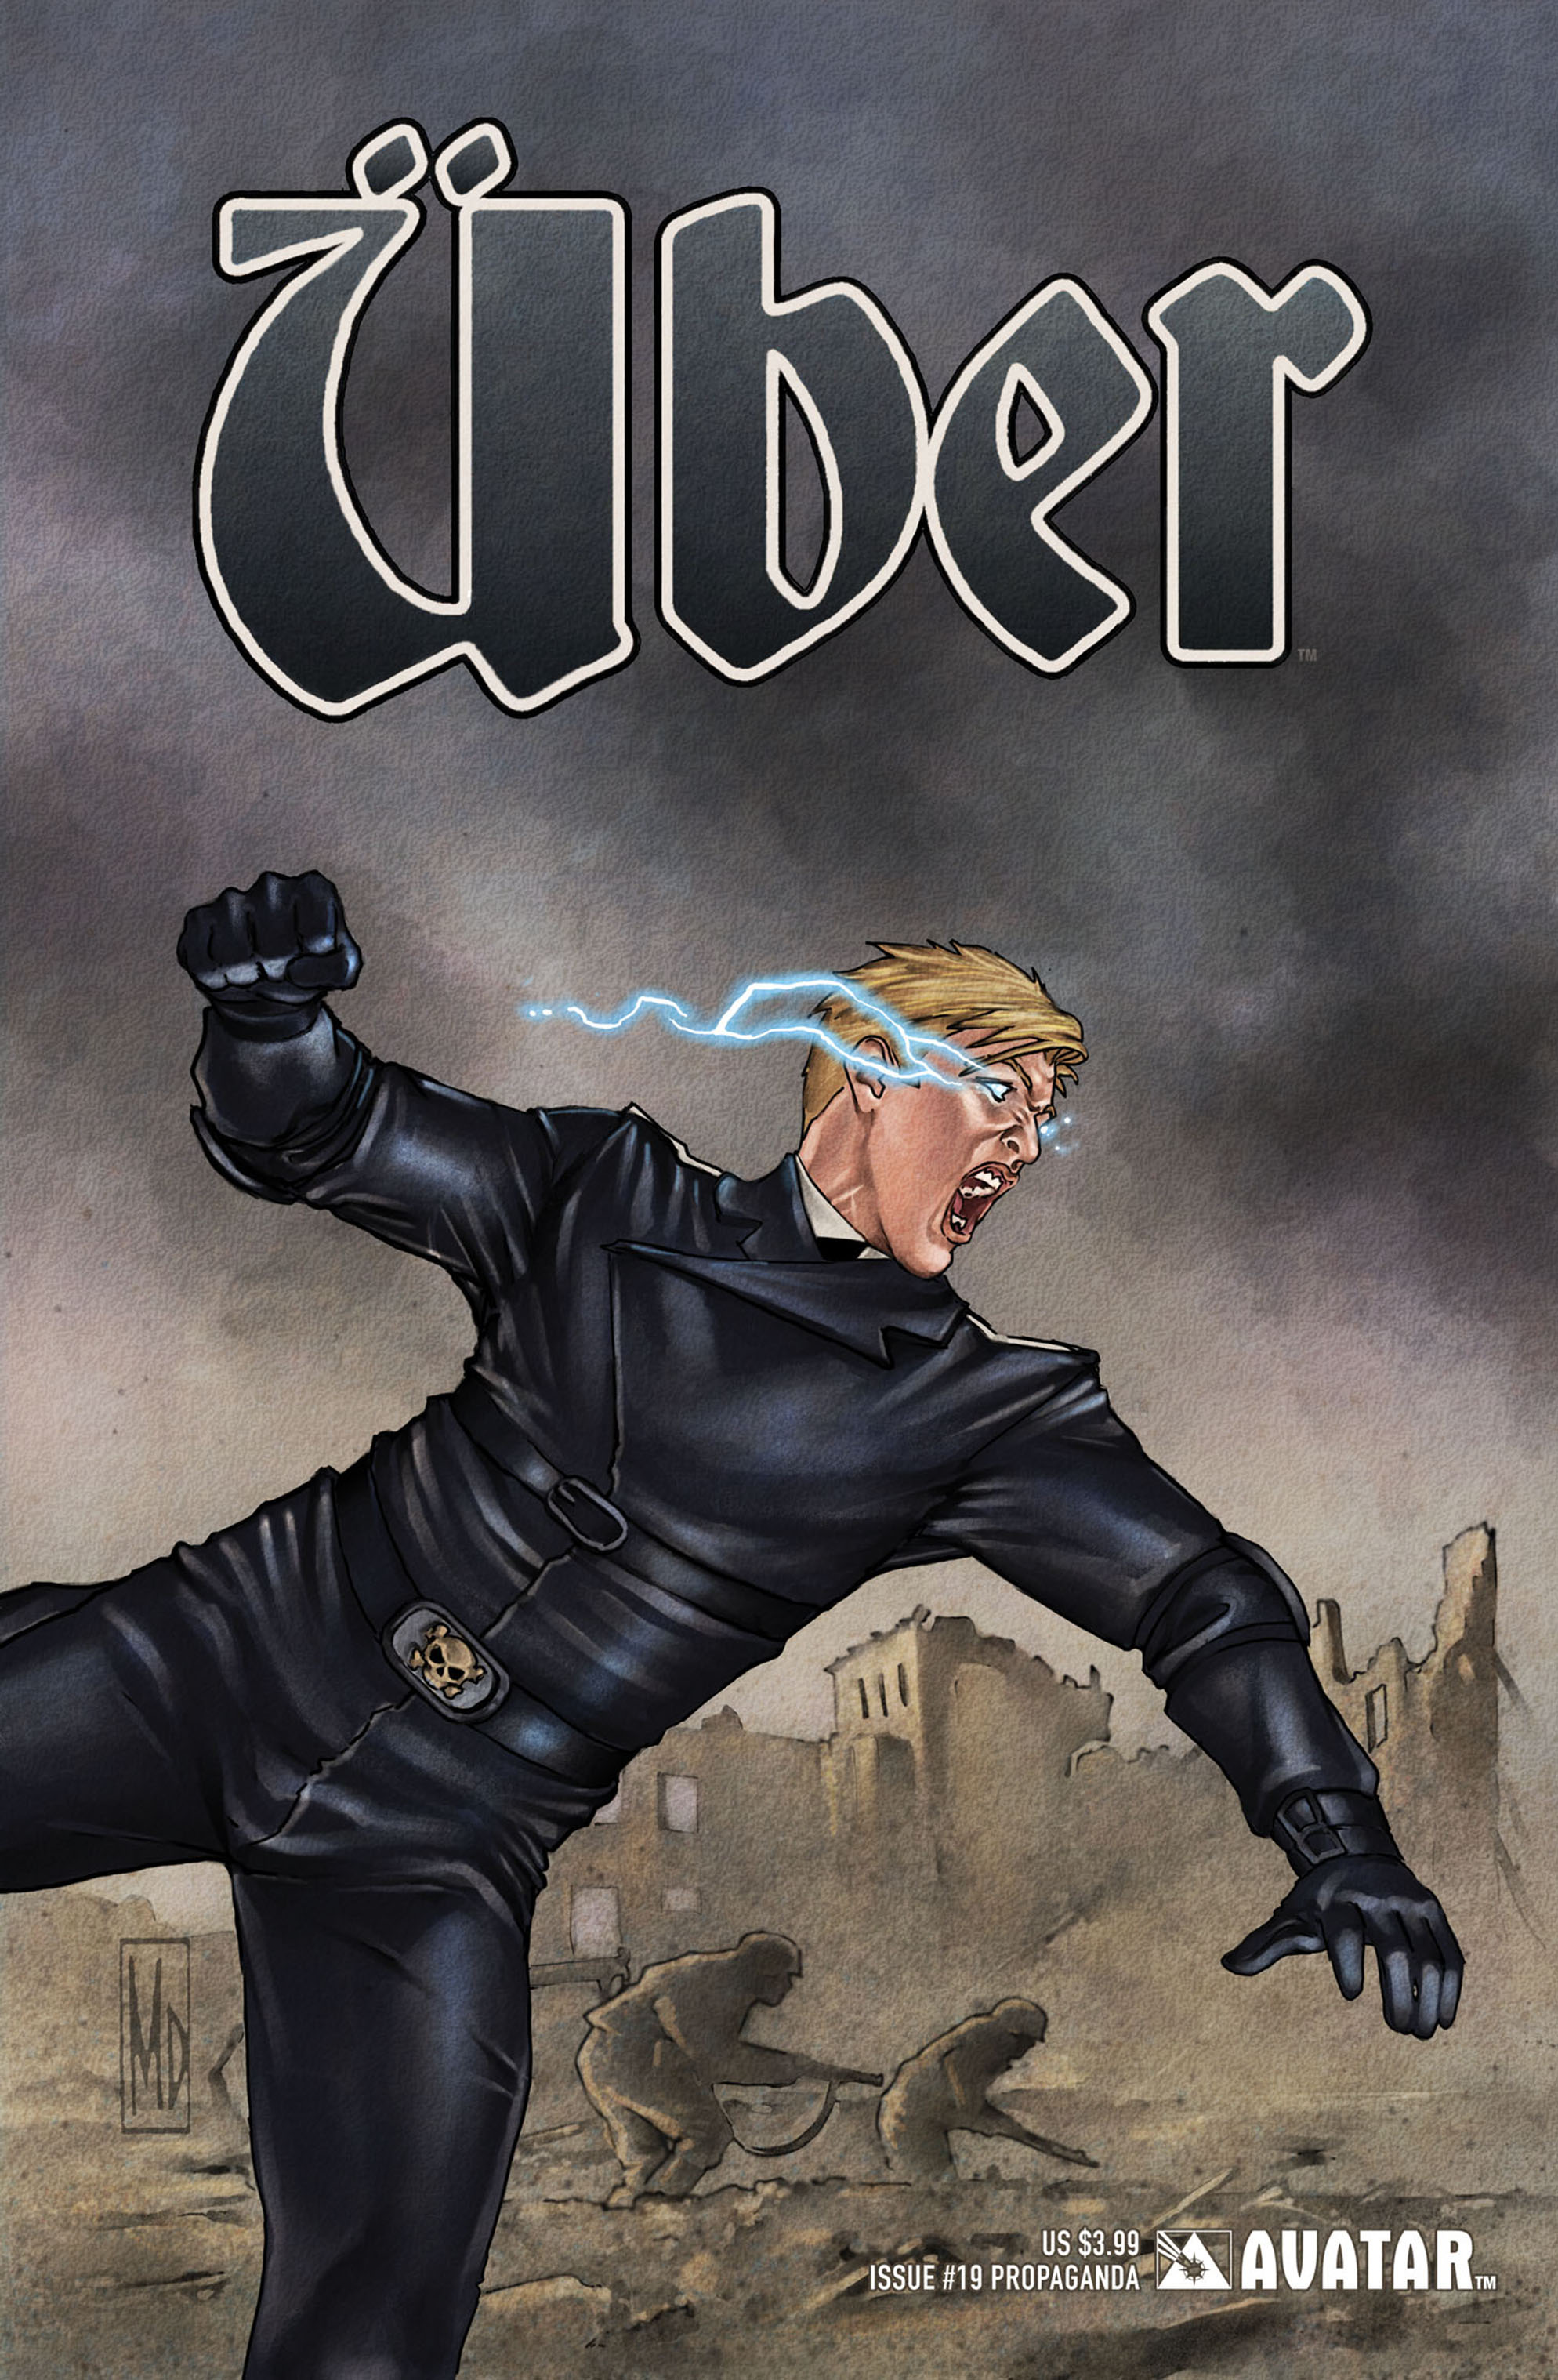 Read online Uber comic -  Issue #19 - 2